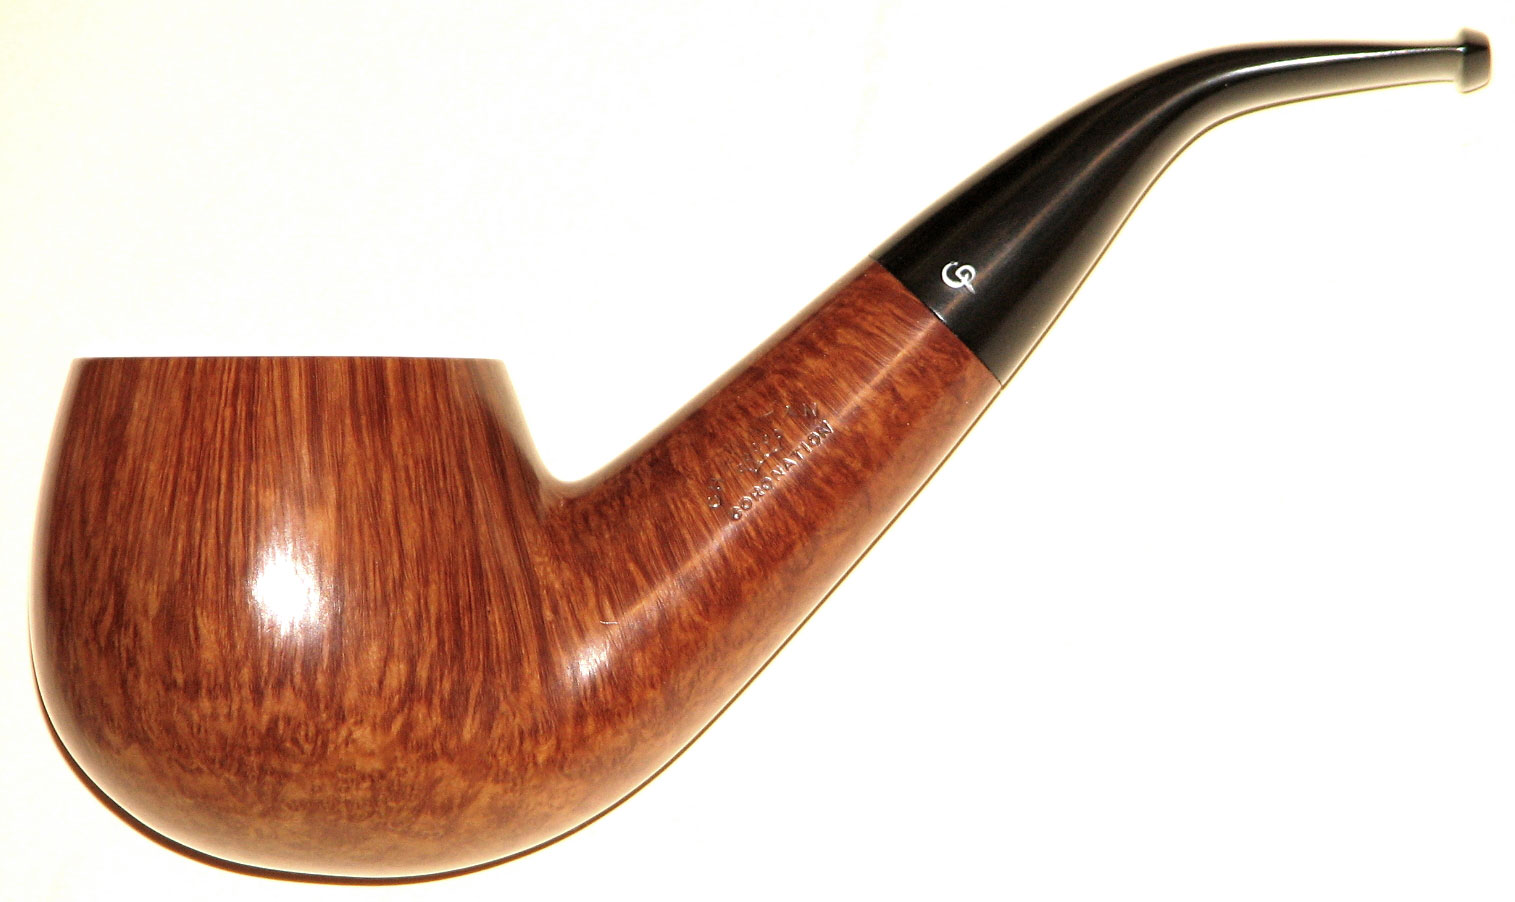 Fred Hannau0027s New Book for Pipe Smokers a Must Have | The #1 Source for Pipes and Pipe Tobacco Information  sc 1 st  Pipes Magazine & Fred Hannau0027s New Book for Pipe Smokers a Must Have | The #1 Source ...